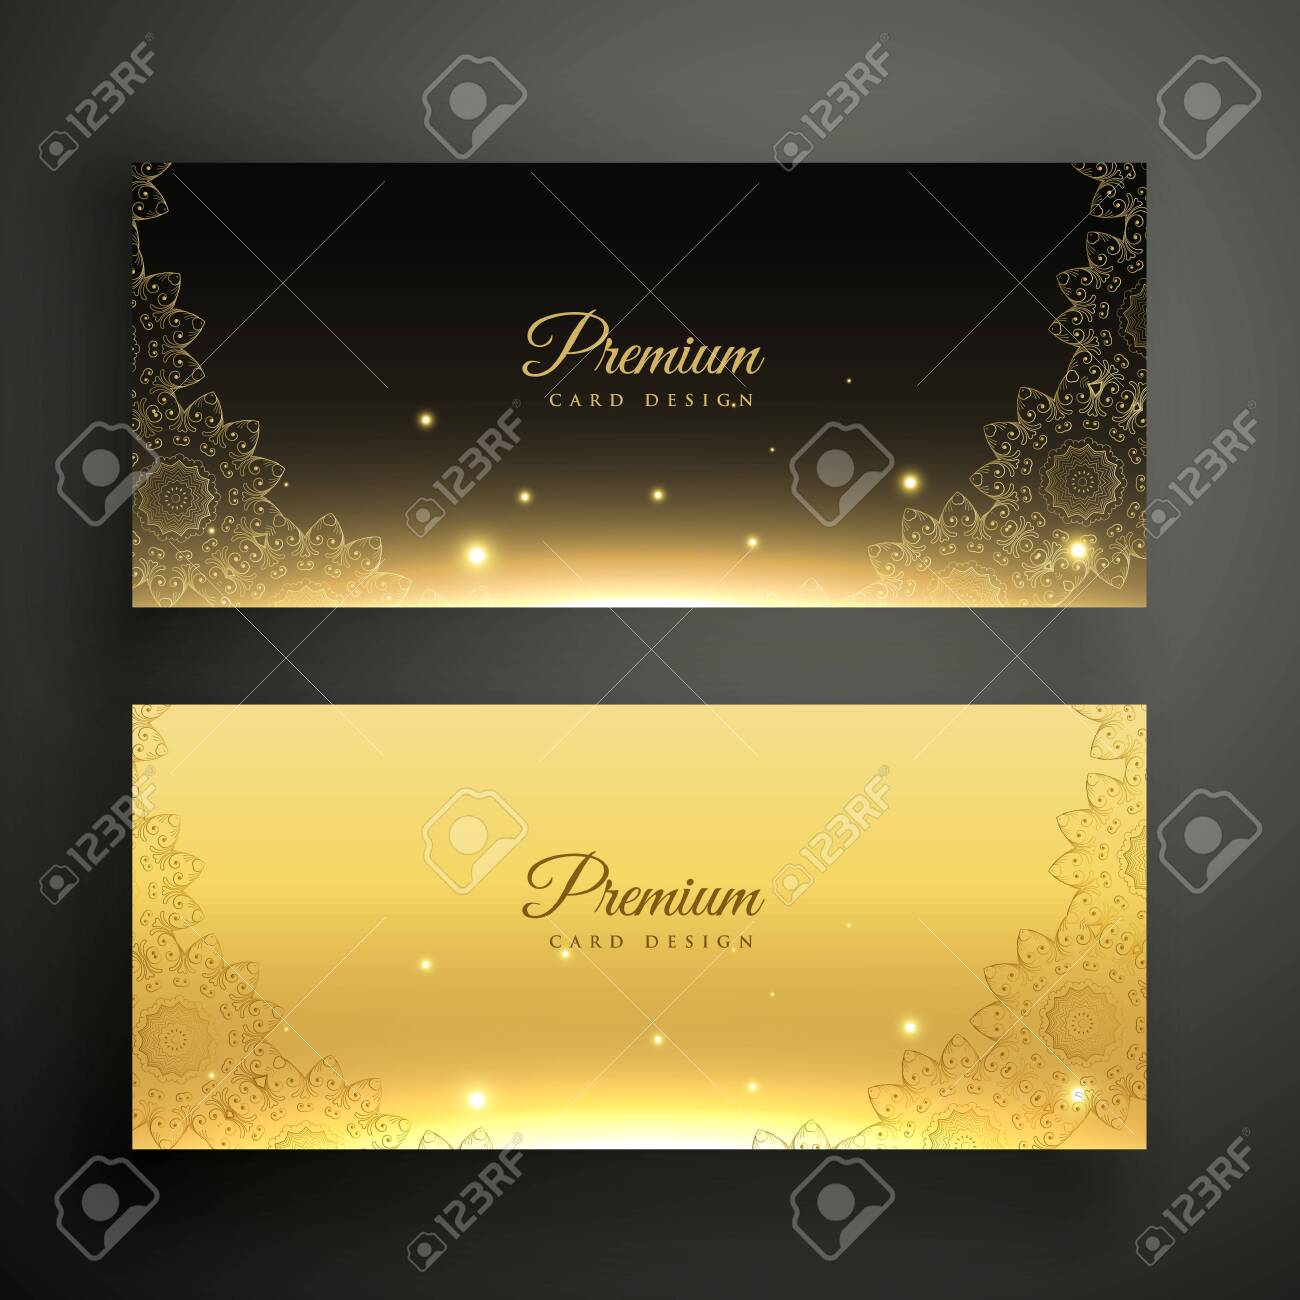 black and golden ornamental decoration banners - 149169213